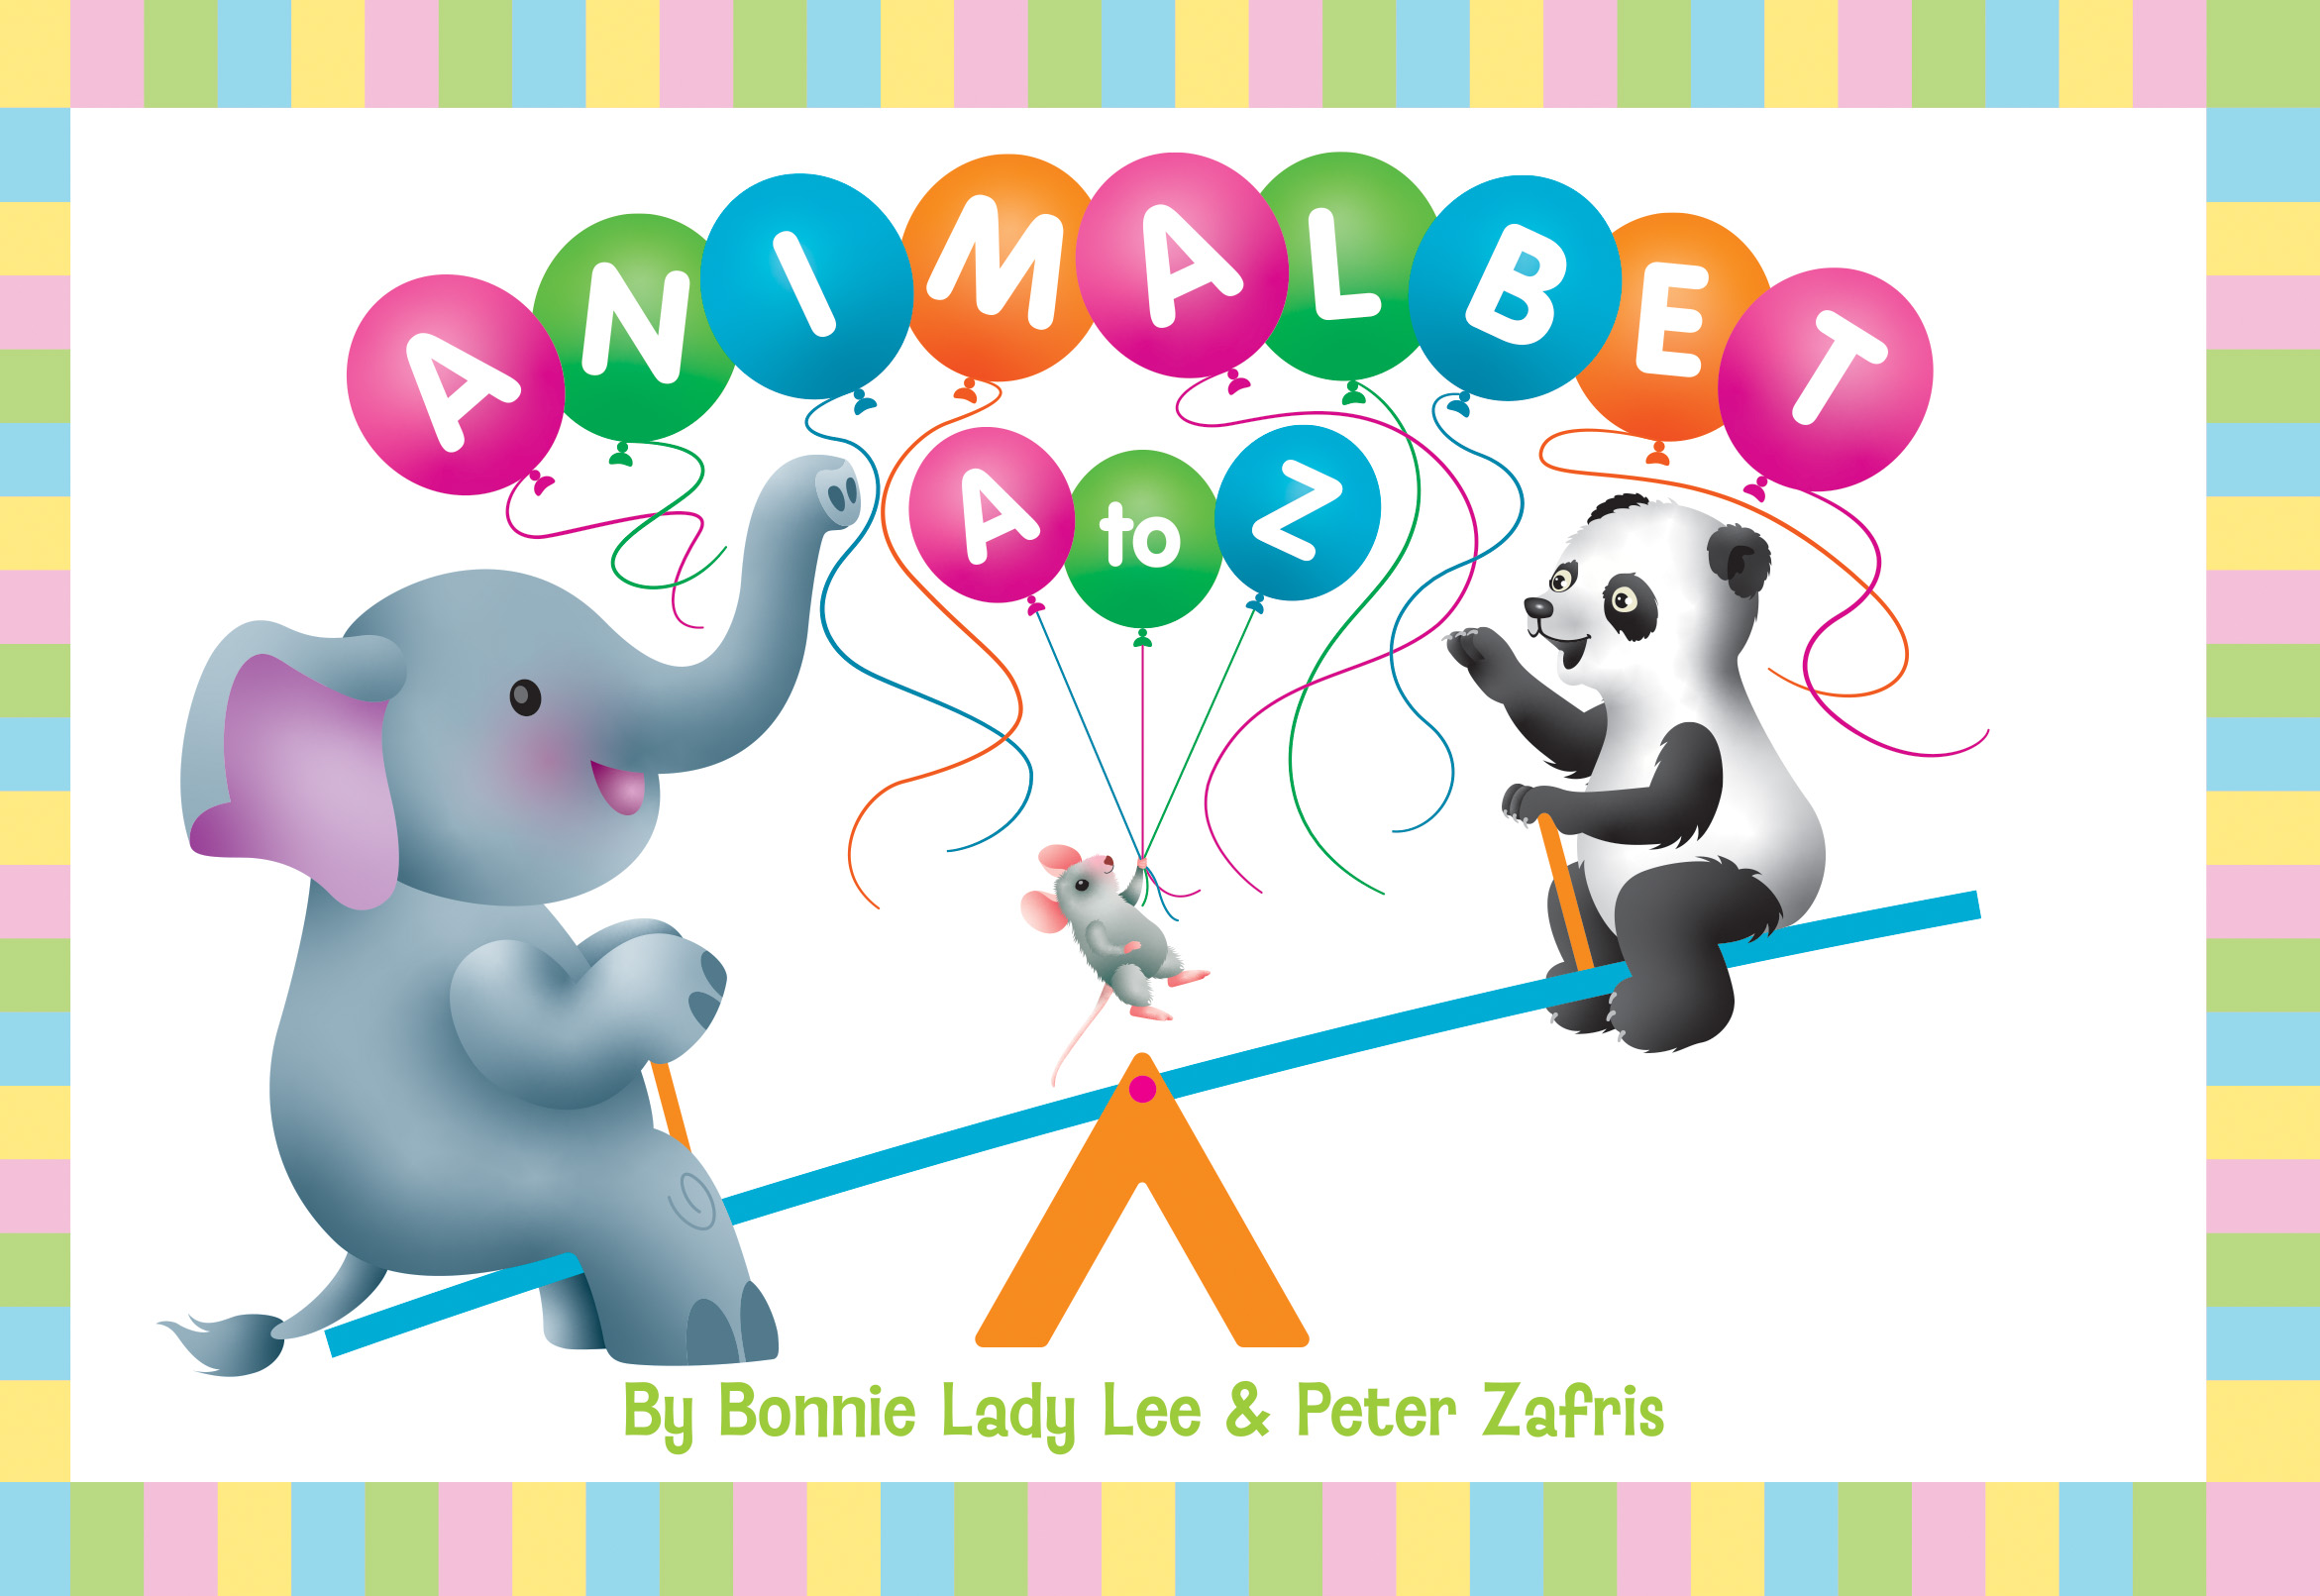 slide 1 ANIMALBET! A to Z, by Bonnie Lady Lee and Peter Zafris. ANIMALBET teaches you the A-B-C's in a wild, animal-way. Board Book. Ages Baby to 3.